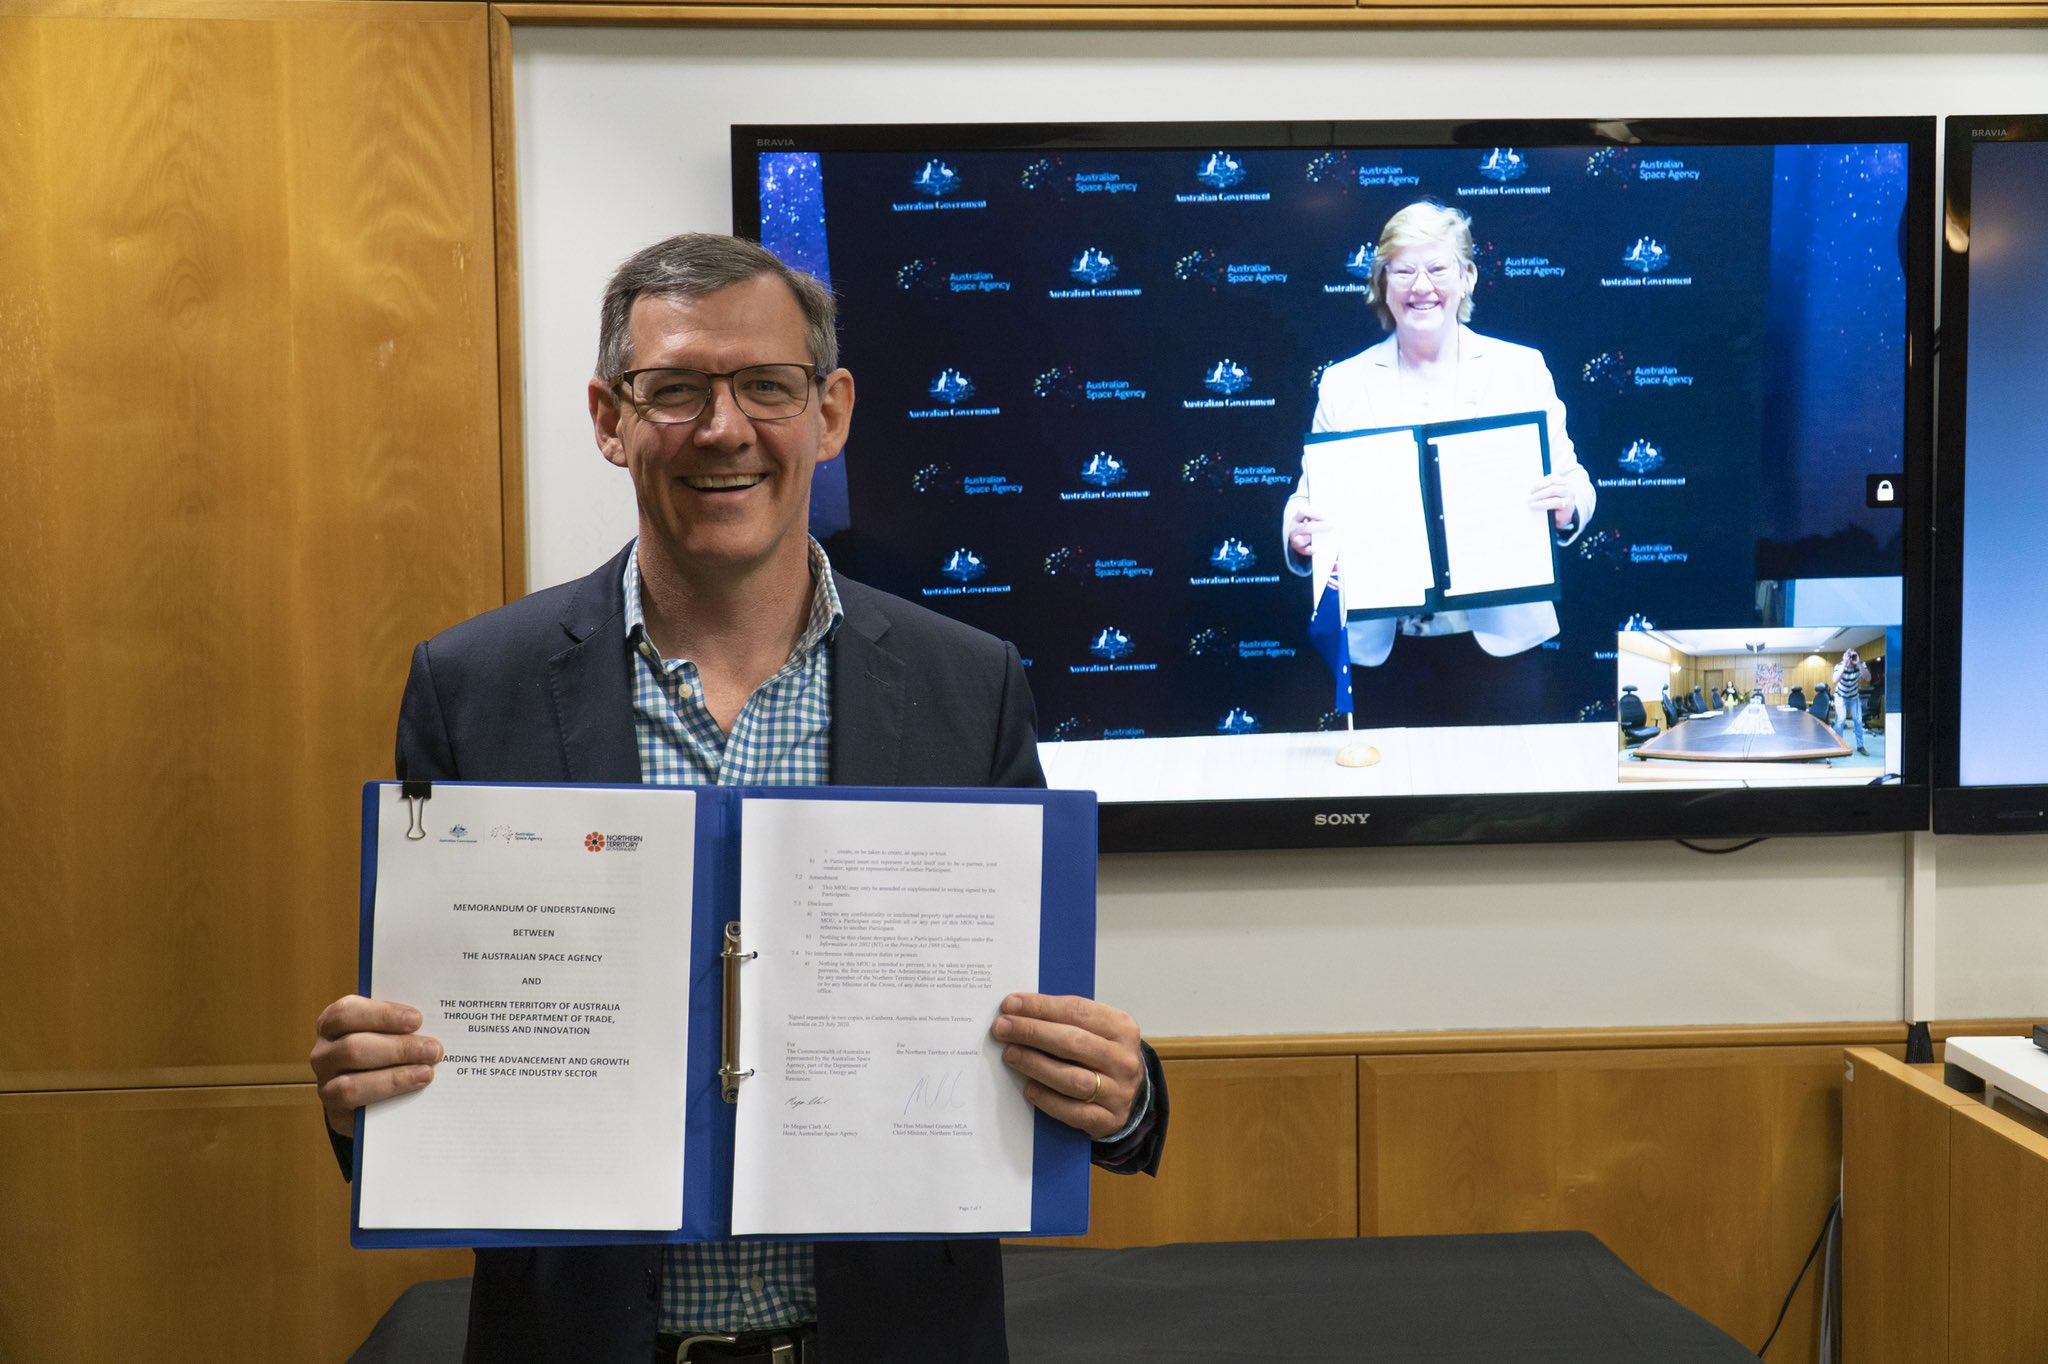 Man standing in foreground holding up open folder showing signature. In background a TV showing a woman also standing up with an open folder showing signature. The image represents both parties signing the MoU through a virtual meeting.